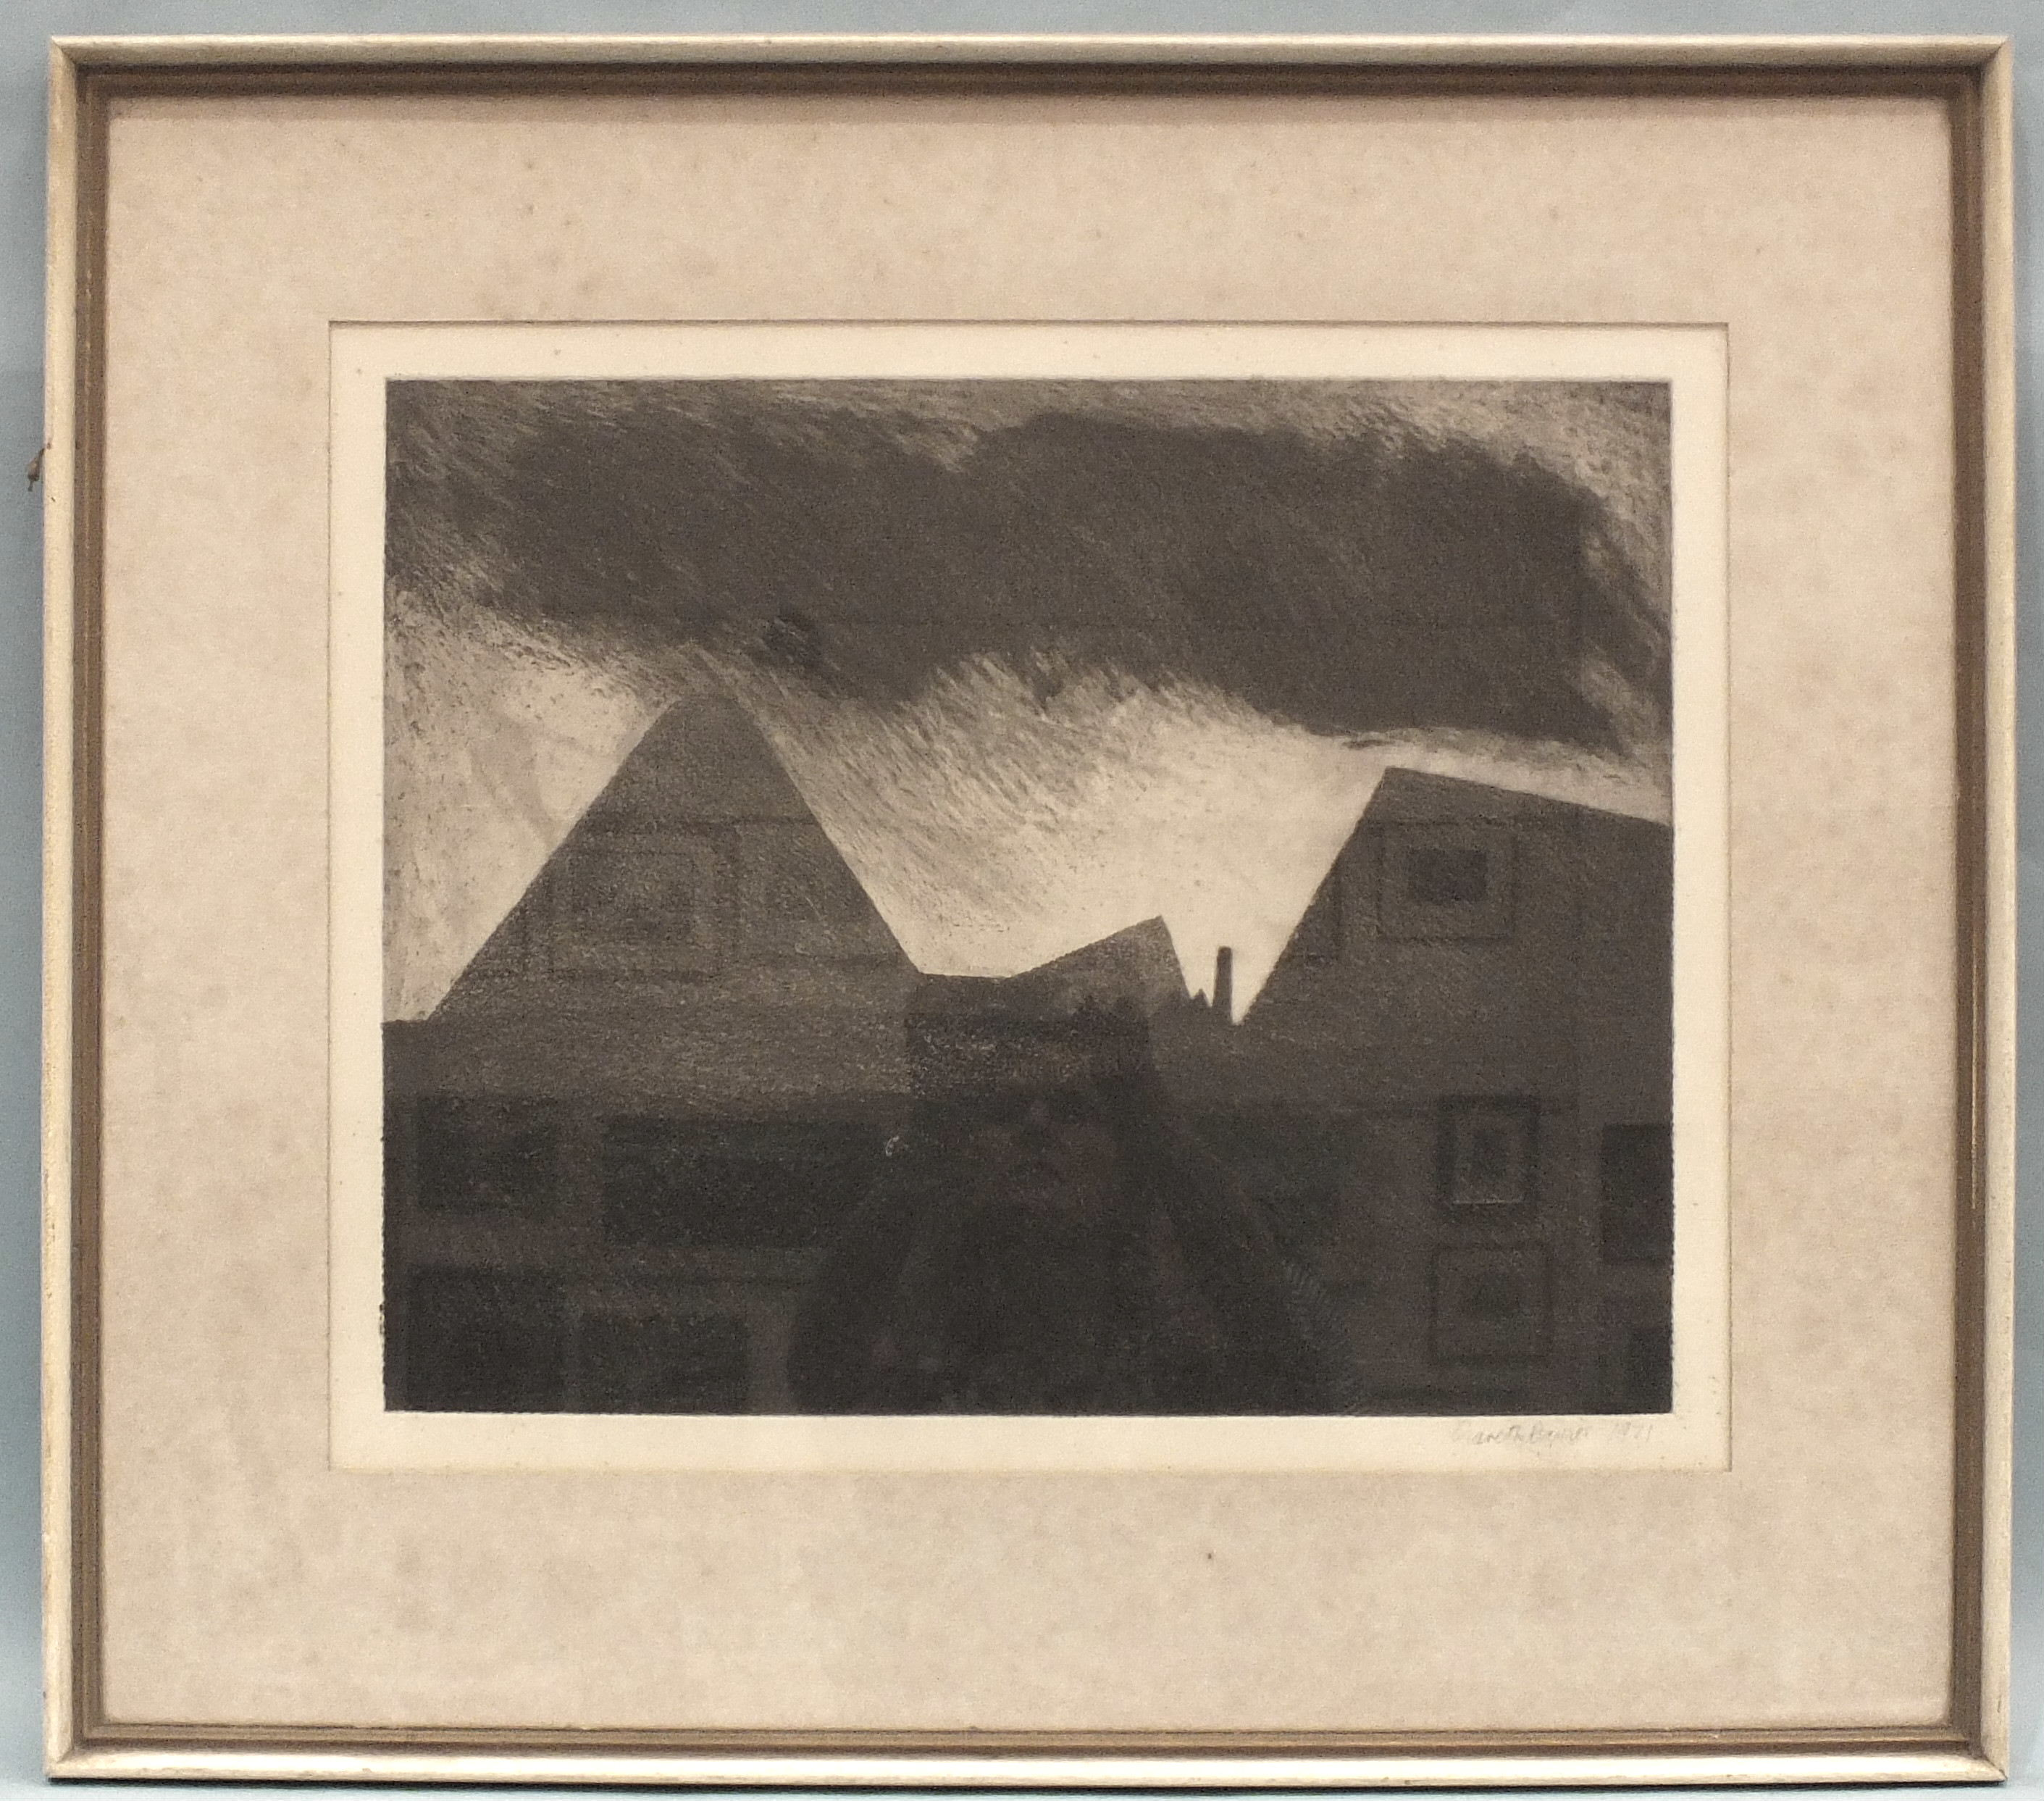 Gareth Davies (b.1937) 'Coal mining landscape', a signed etching, 45 x 54.5cm, signed in pencil on